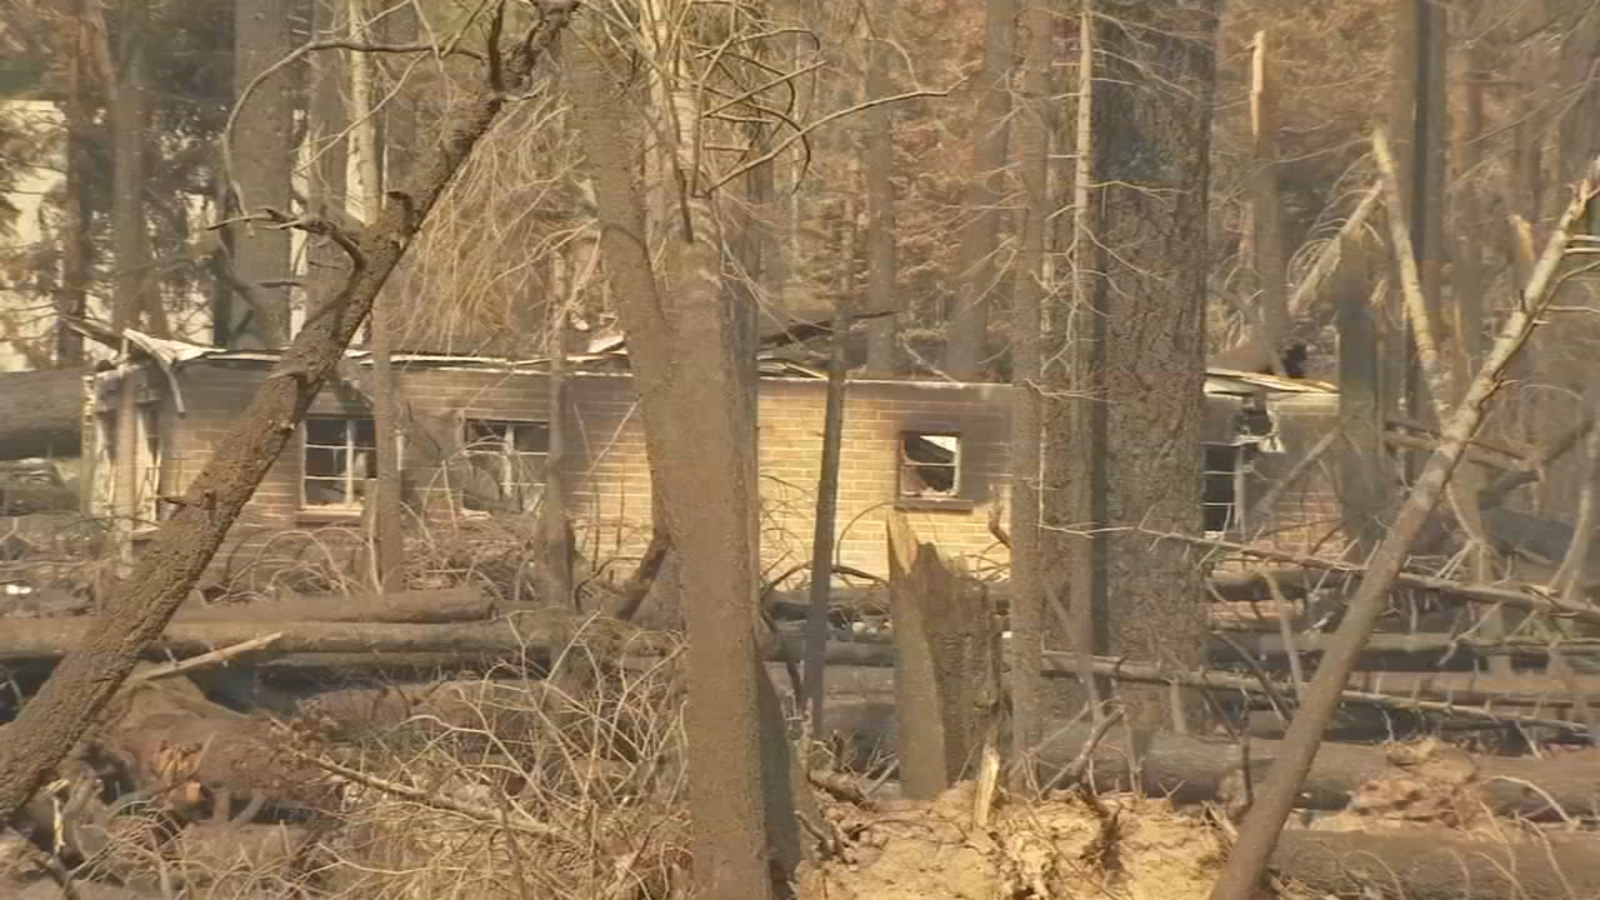 Creek Fire victims receive funds from local non-profits, FEMA to rebuild